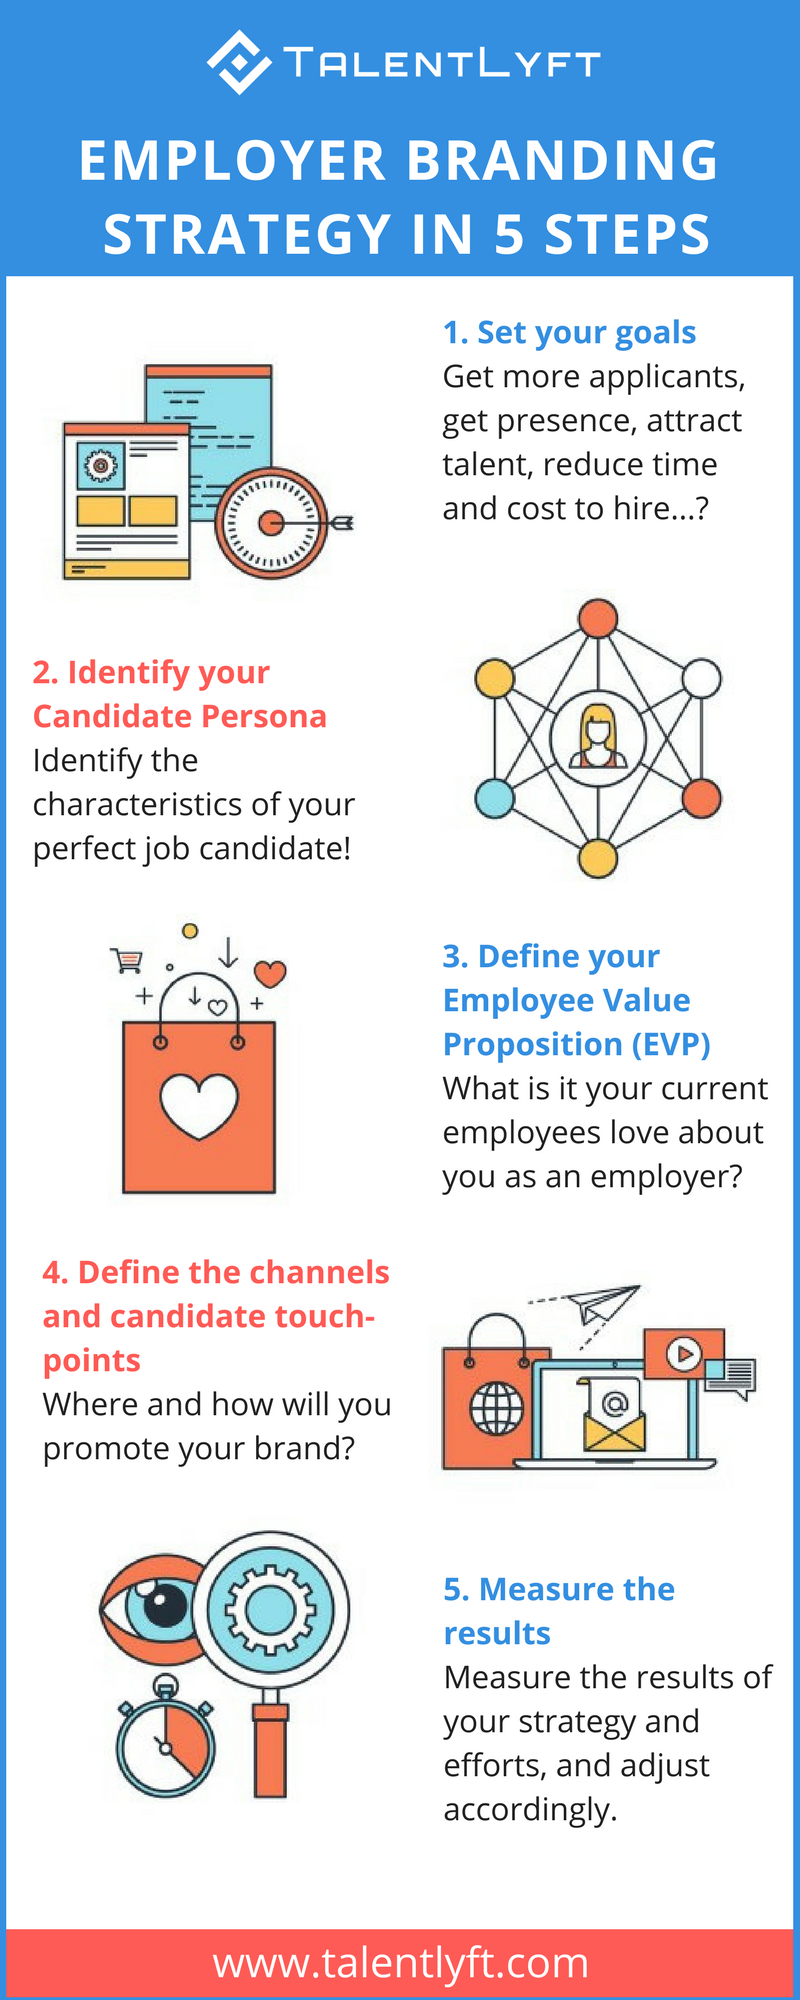 5 steps employer branding strategy